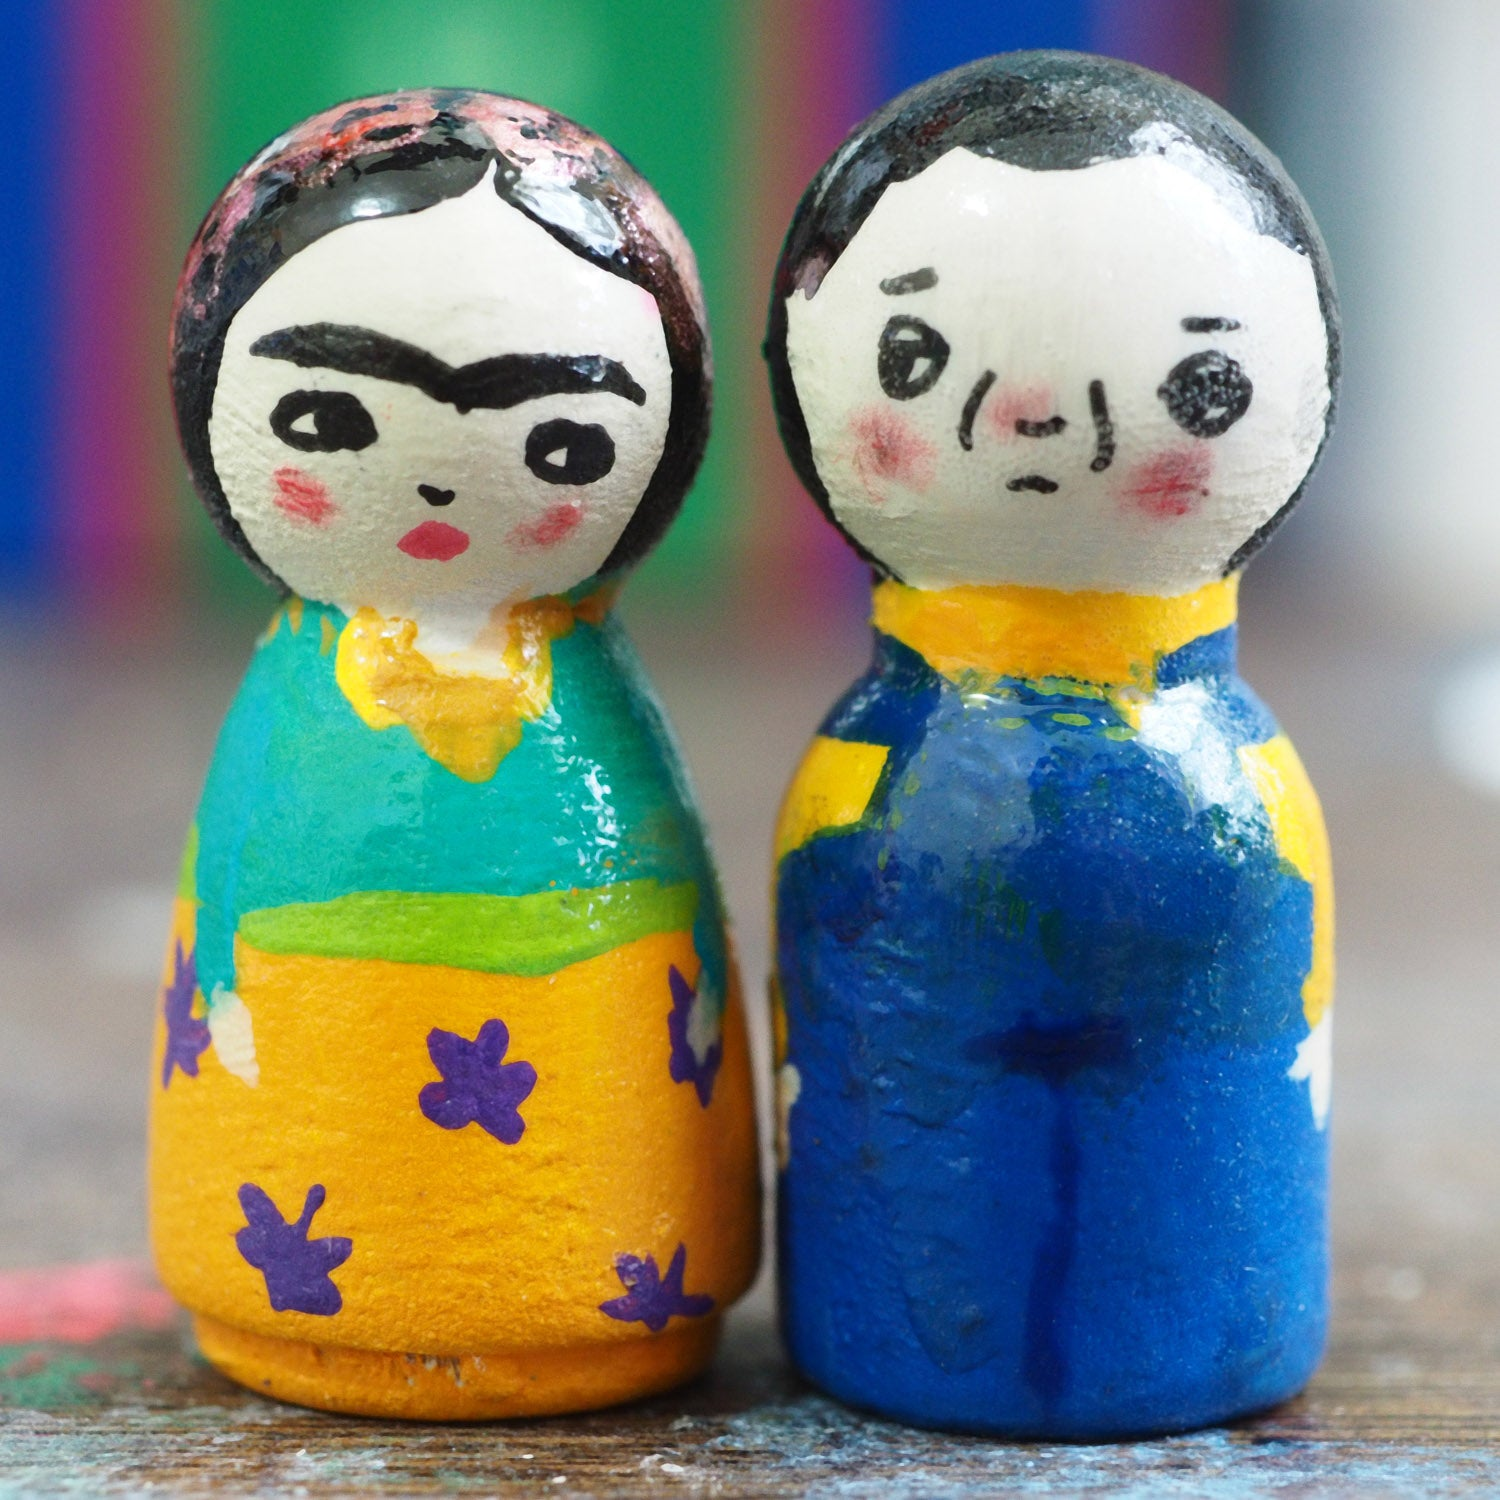 Frida and Diego - Micro kokeshi wood peg dolls by Danita, Miniature Dolls by Danita Art